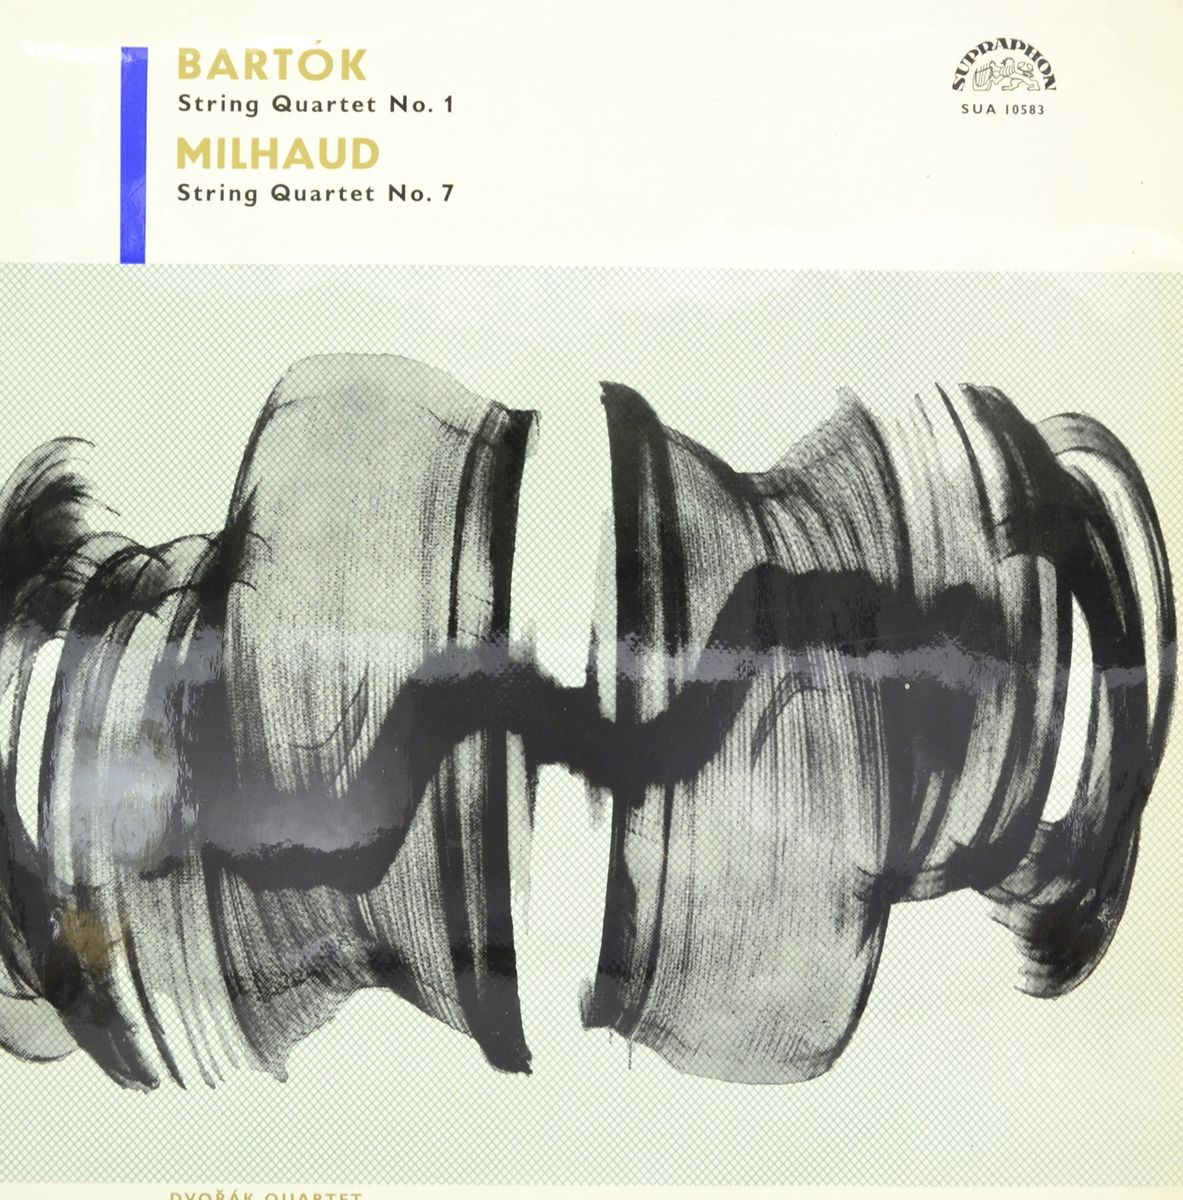 Dvorak Quartet, Bartok, Milhaud – String Quartet No. 1 / String Quartet No. 7 (LP) emerson string quartet complete string quartets mendelssohn emerson string quartet 4 cd